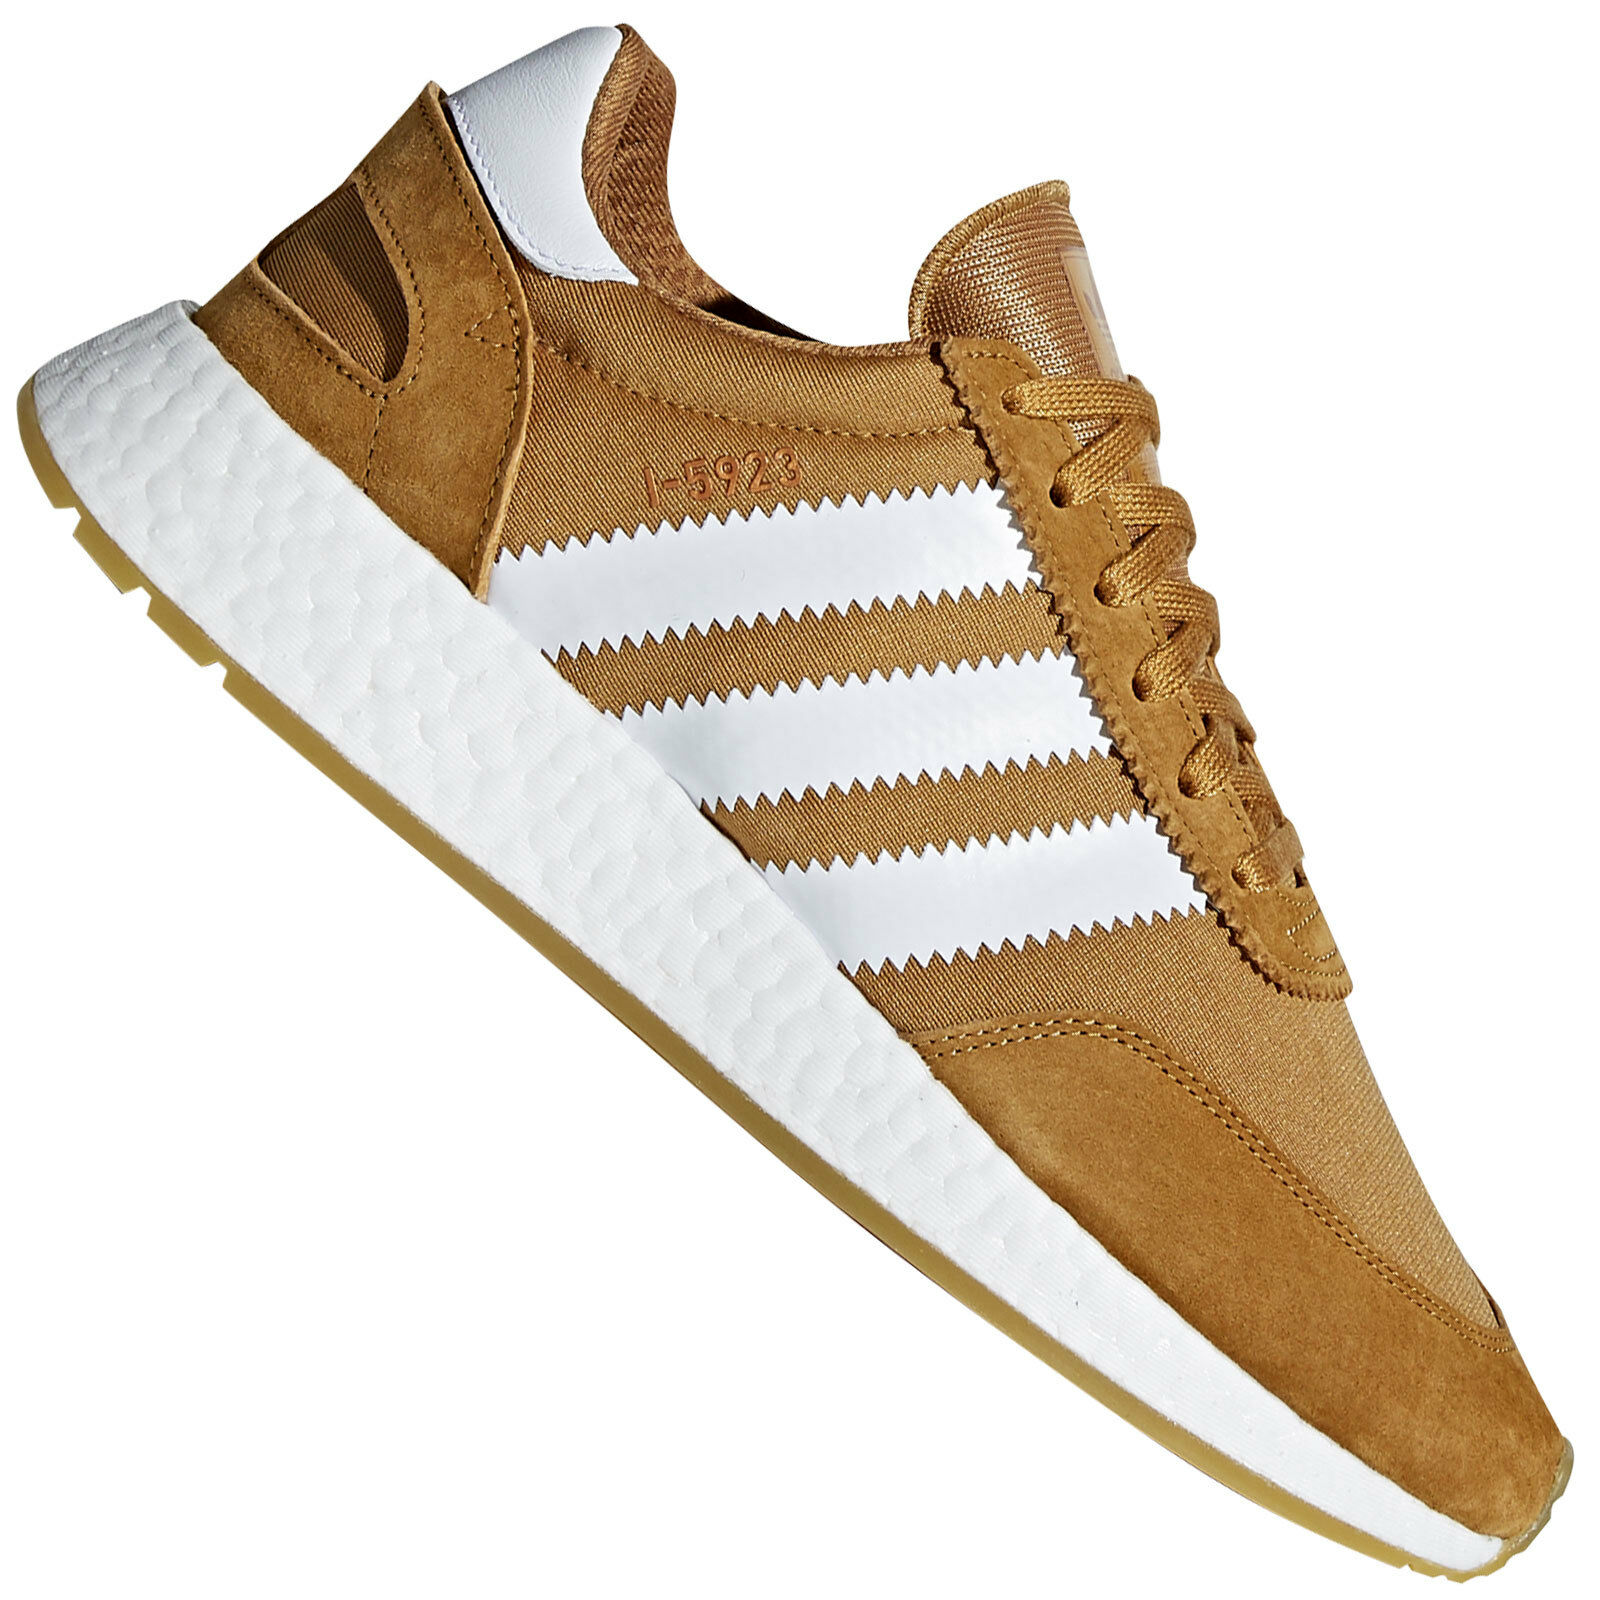 Adidas 5923 Originals zapatillas I 5923 Adidas Cq2491 Marrón 41 1/3 575d43